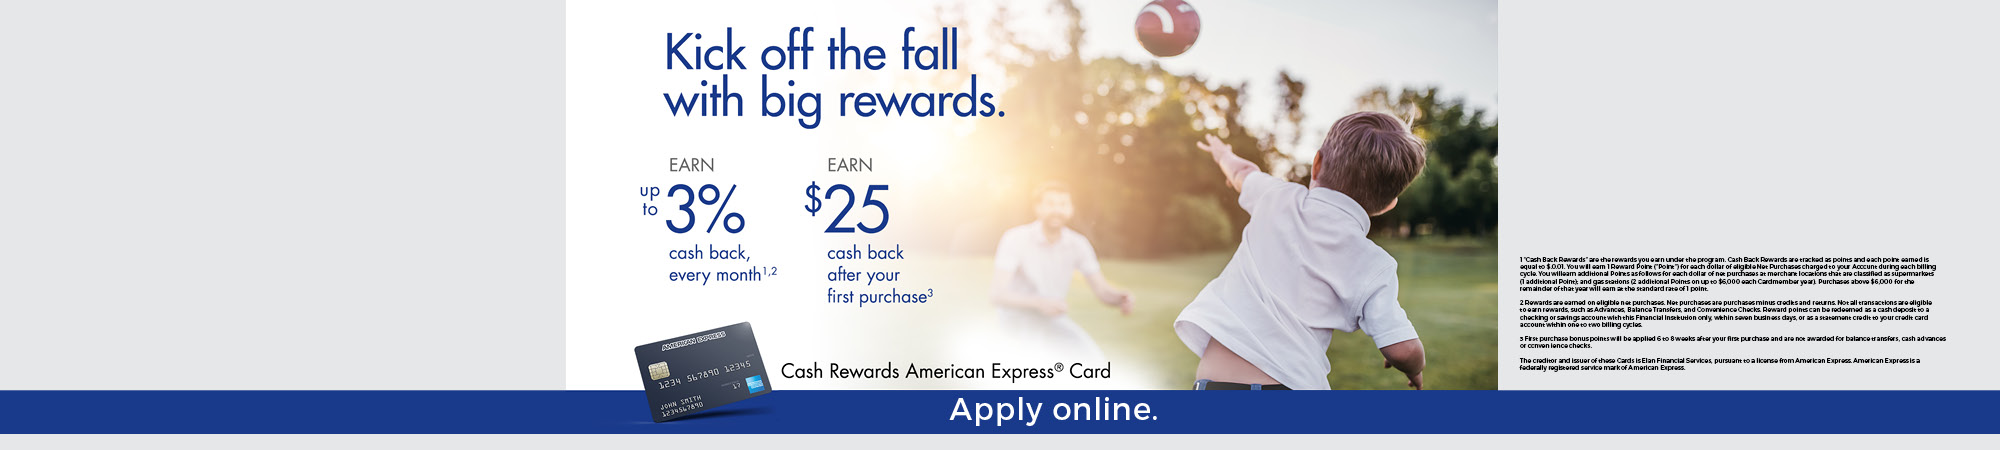 4th Qtr Credit Card Promo